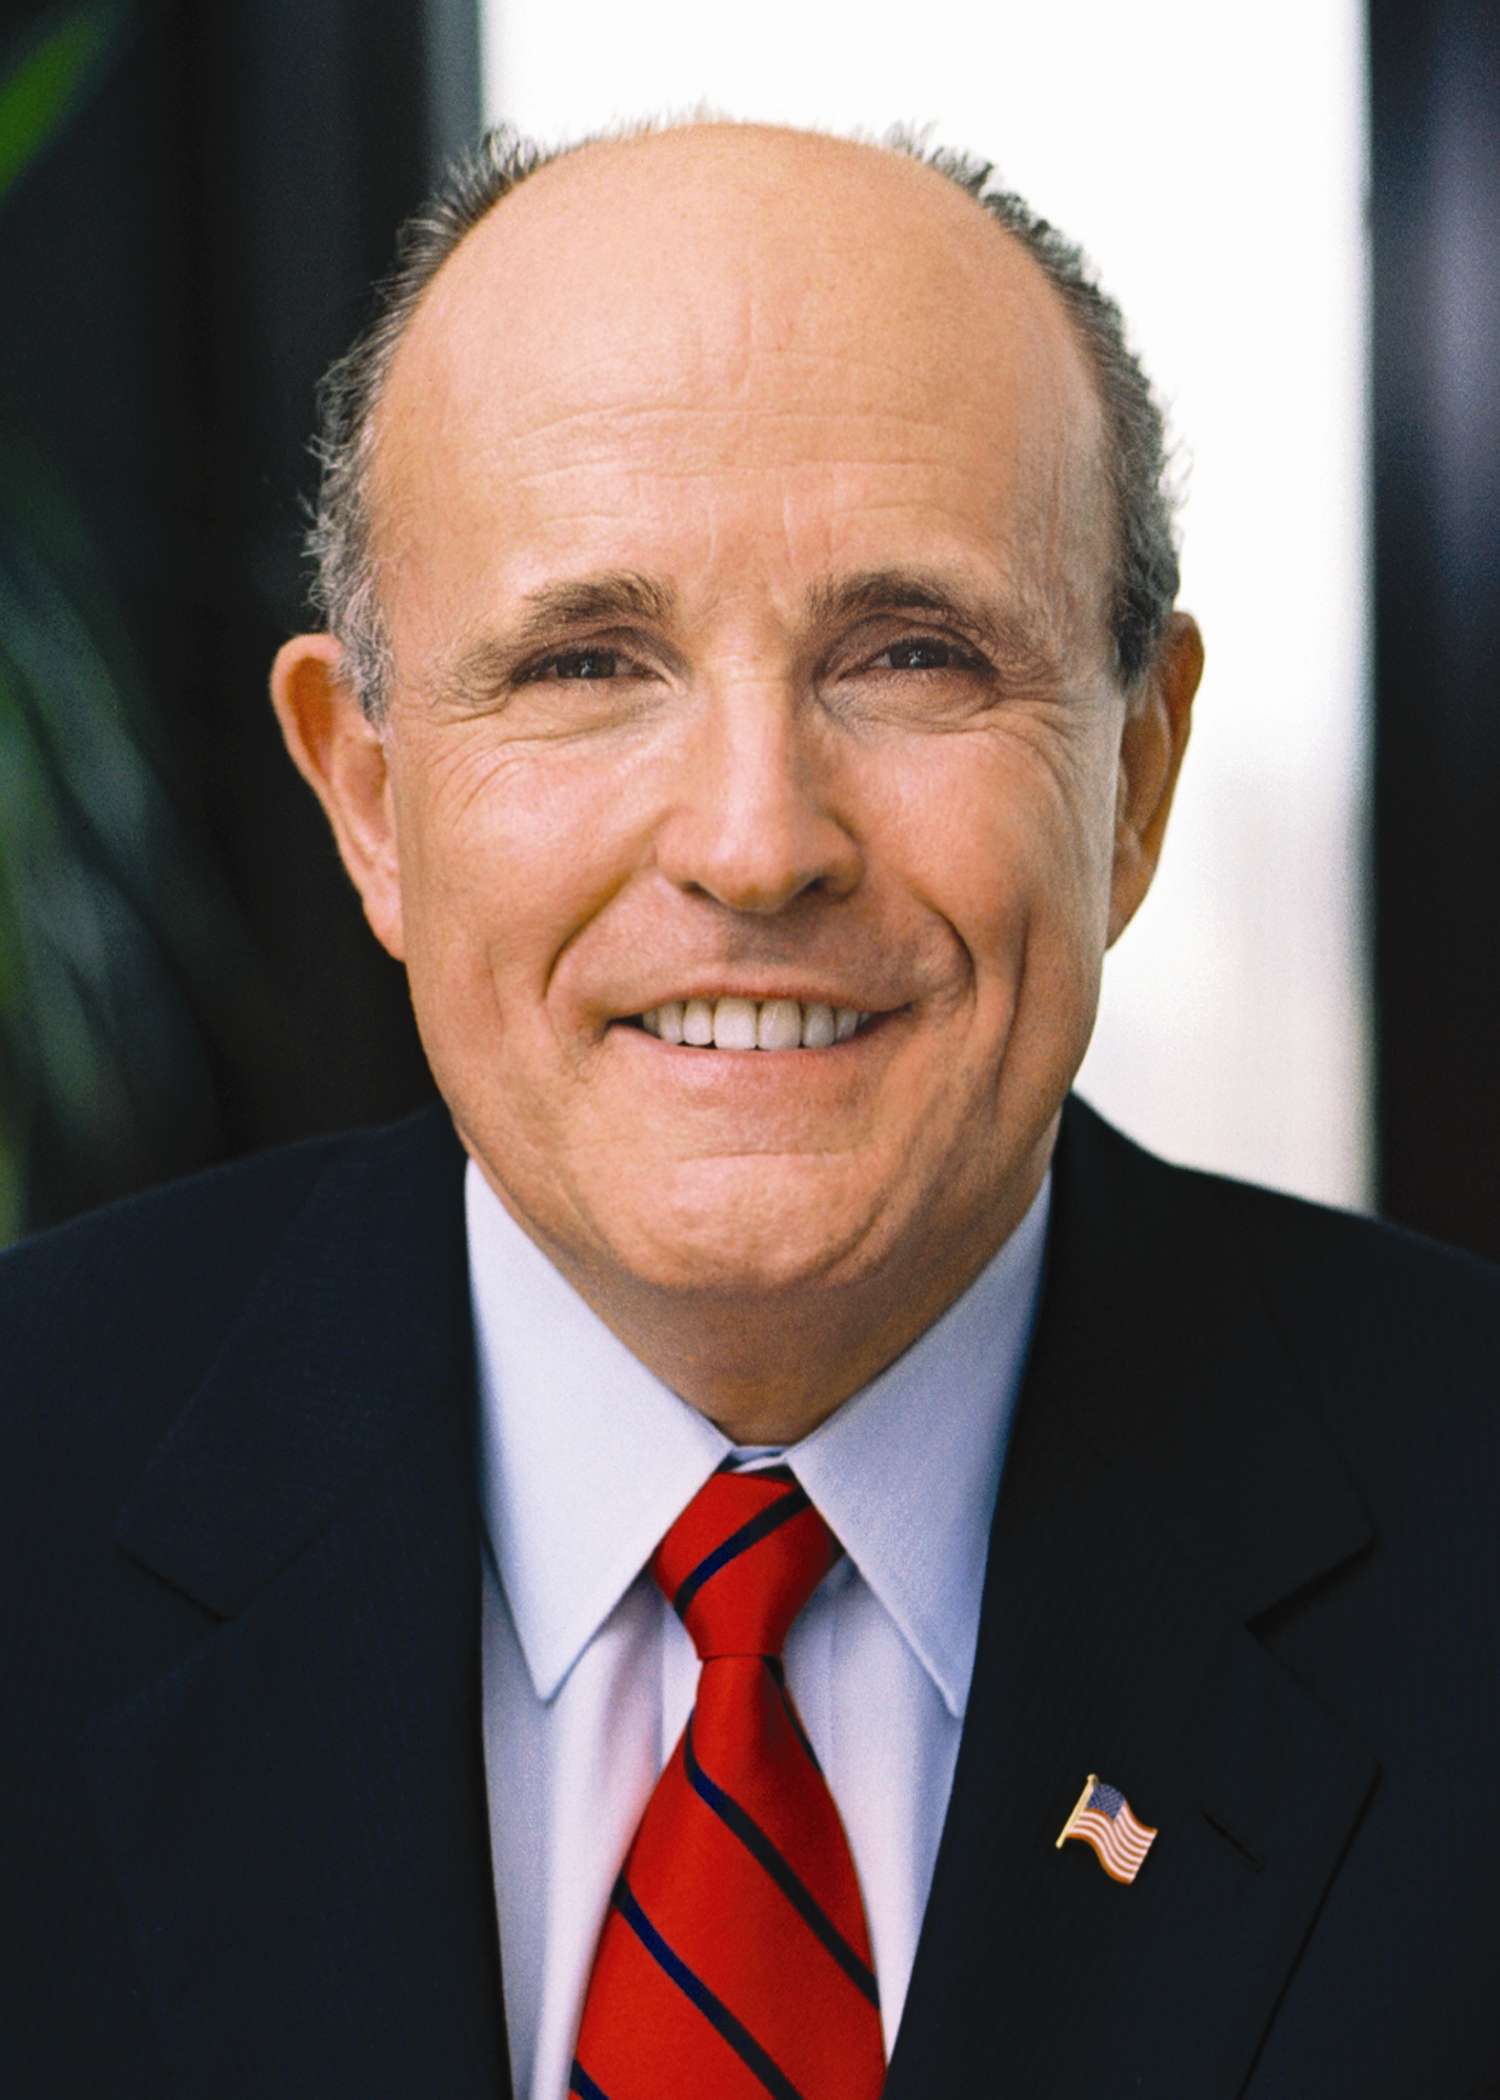 Former New York City Mayor Rudy Giuliani Endorses Donald Trump